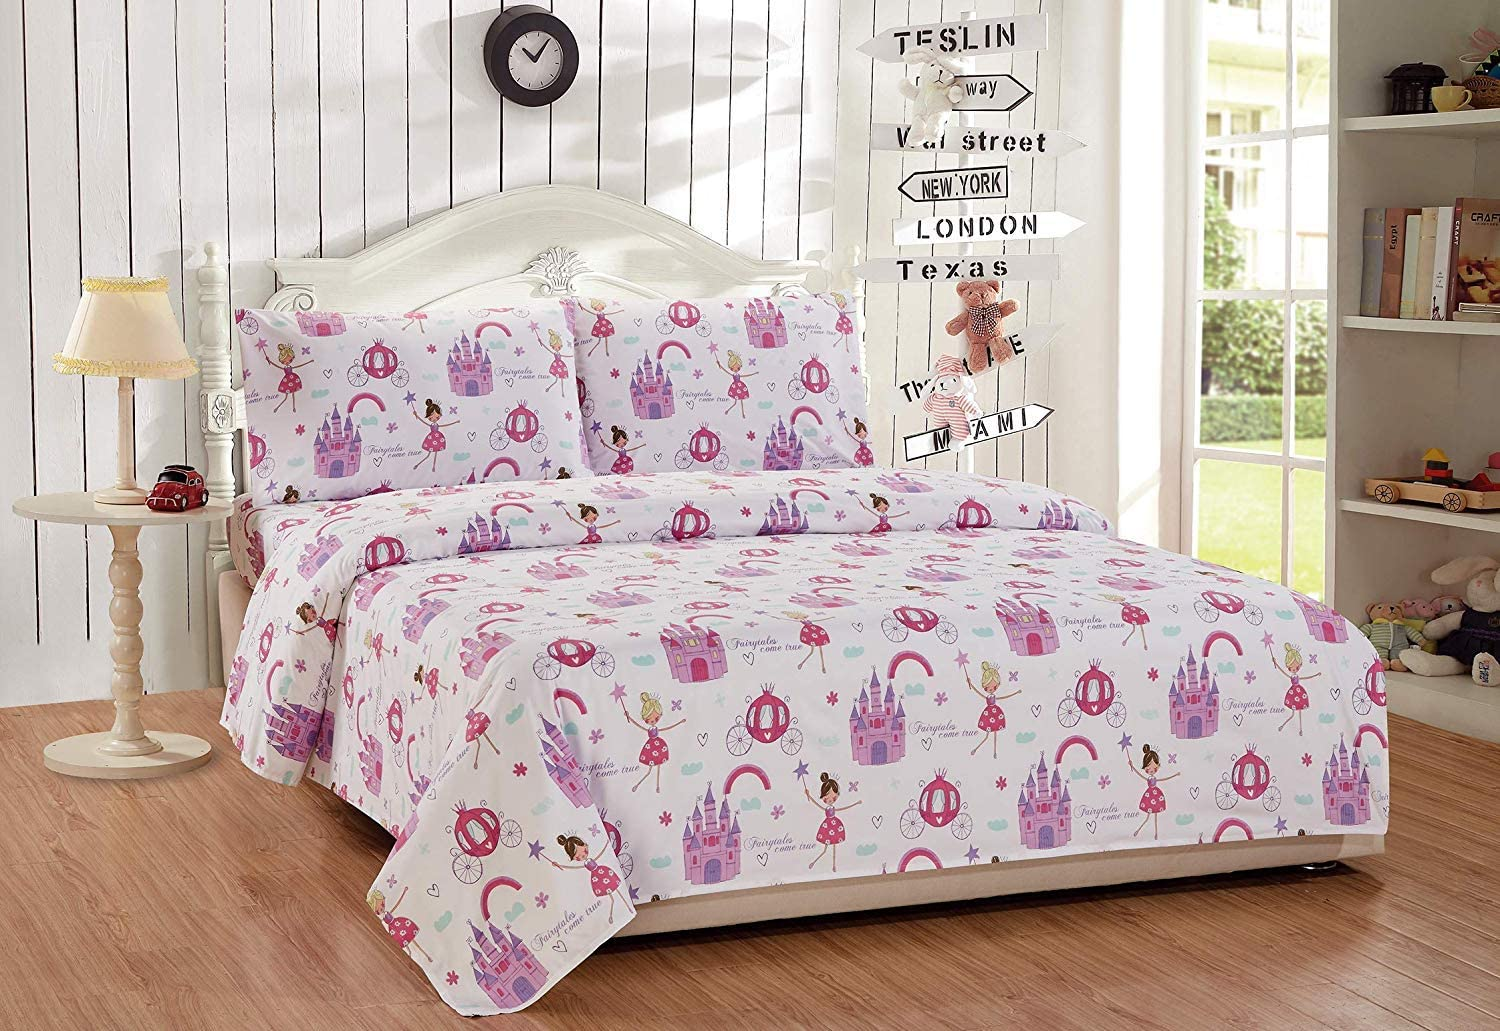 Kids Zone 3 Piece Twin Size Sheet Set for Girls/Teens Fairy-Tales Princess Castle Carriage White Pink Lavender New